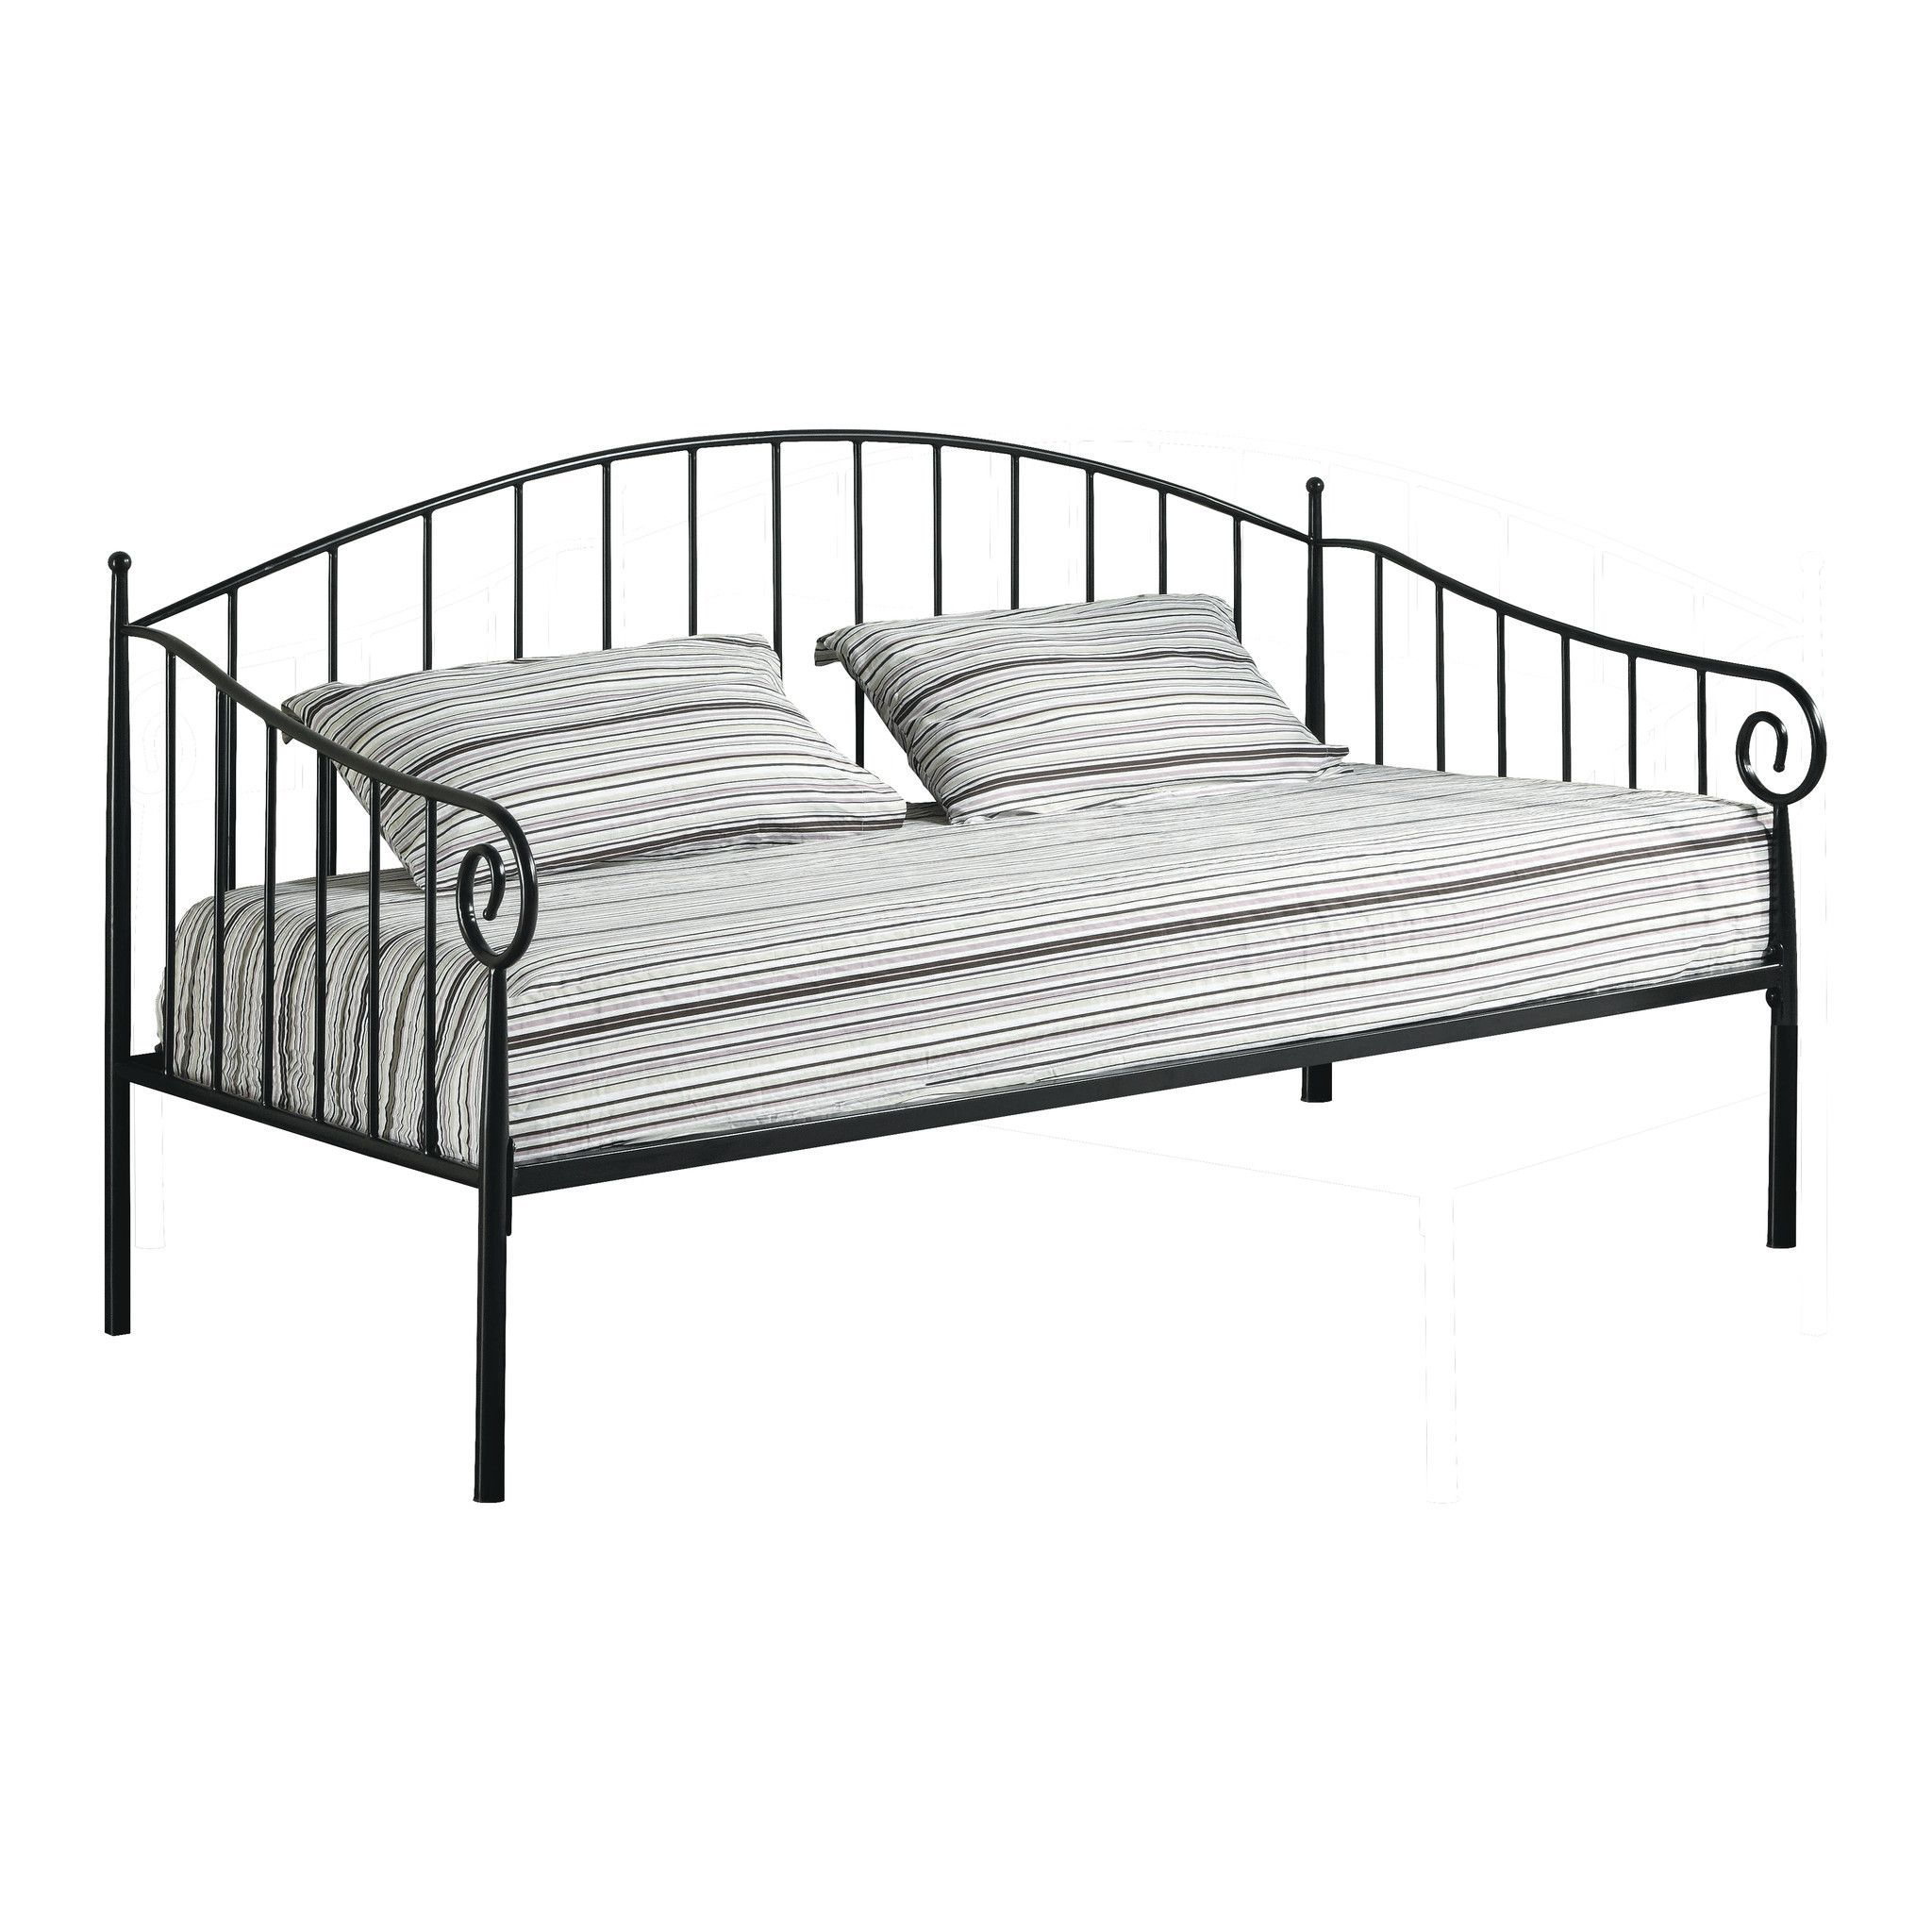 Pilaster Designs - Matt Black Metal Twin Size Day Bed (Daybed) Frame ...